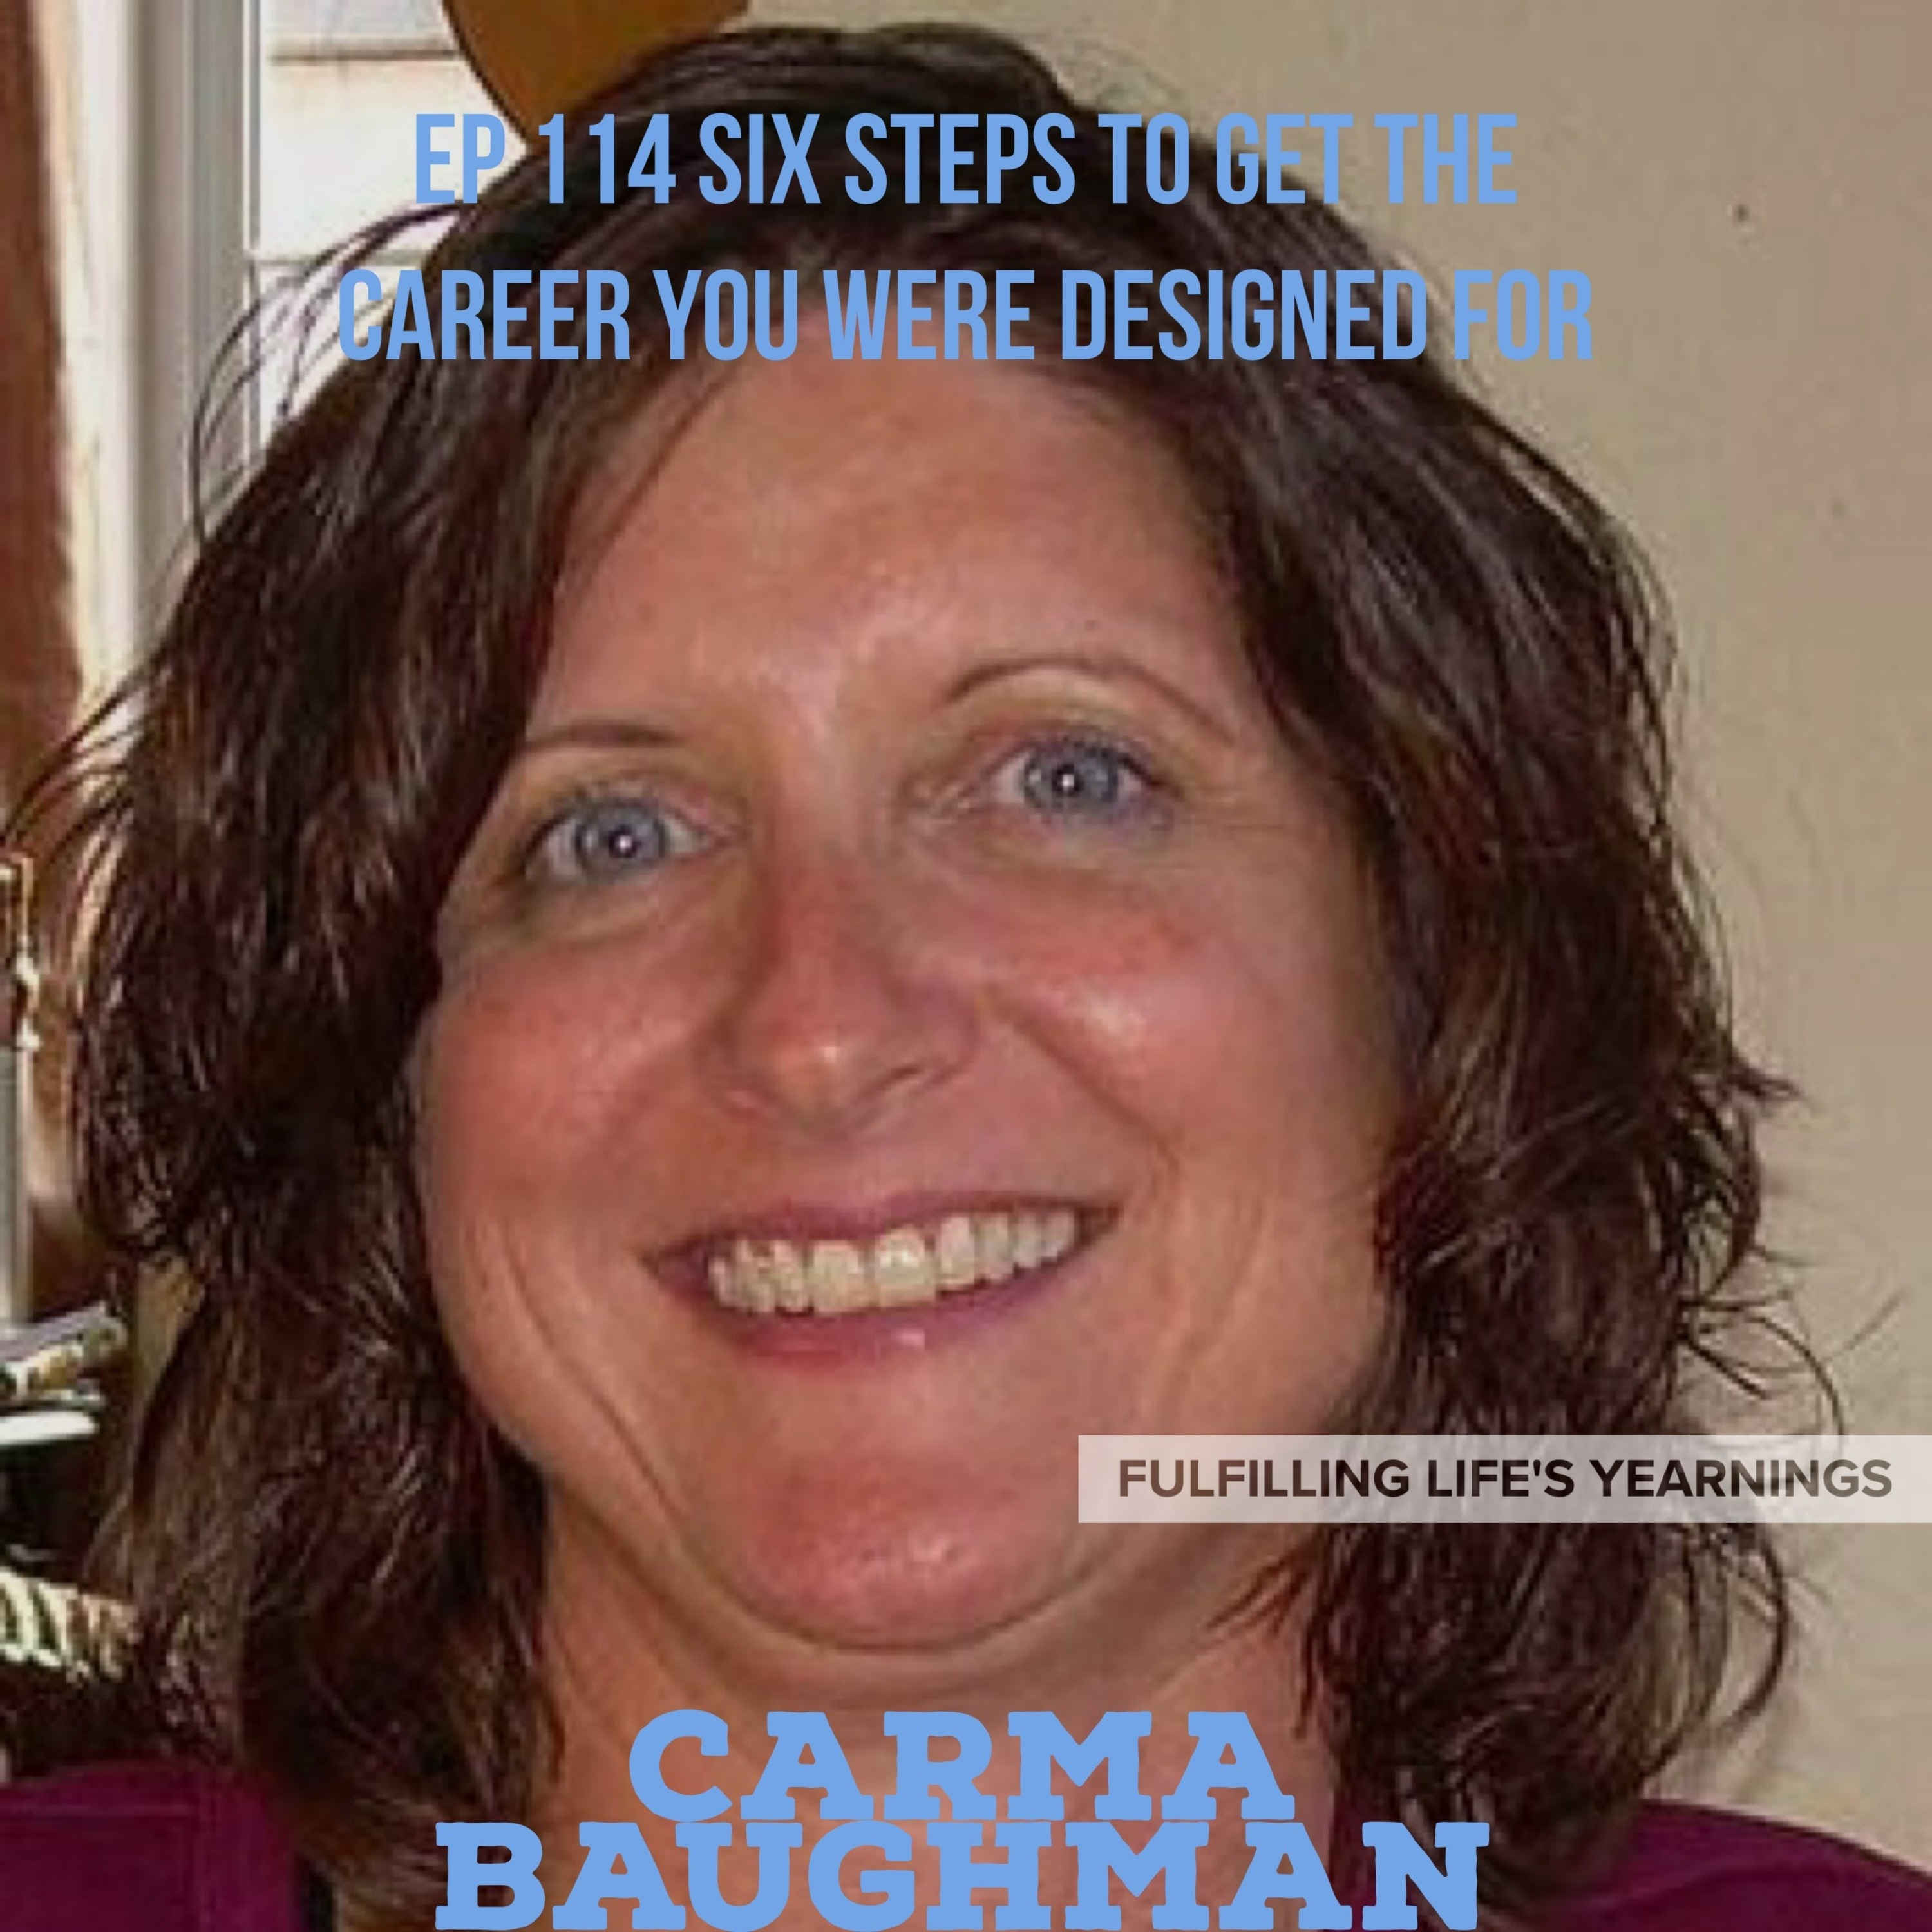 FLY 114 | Corporate Trainer, Carma Baughman | The Ultimate Six-Step System To Help Employees Do The Work They Were Designed For